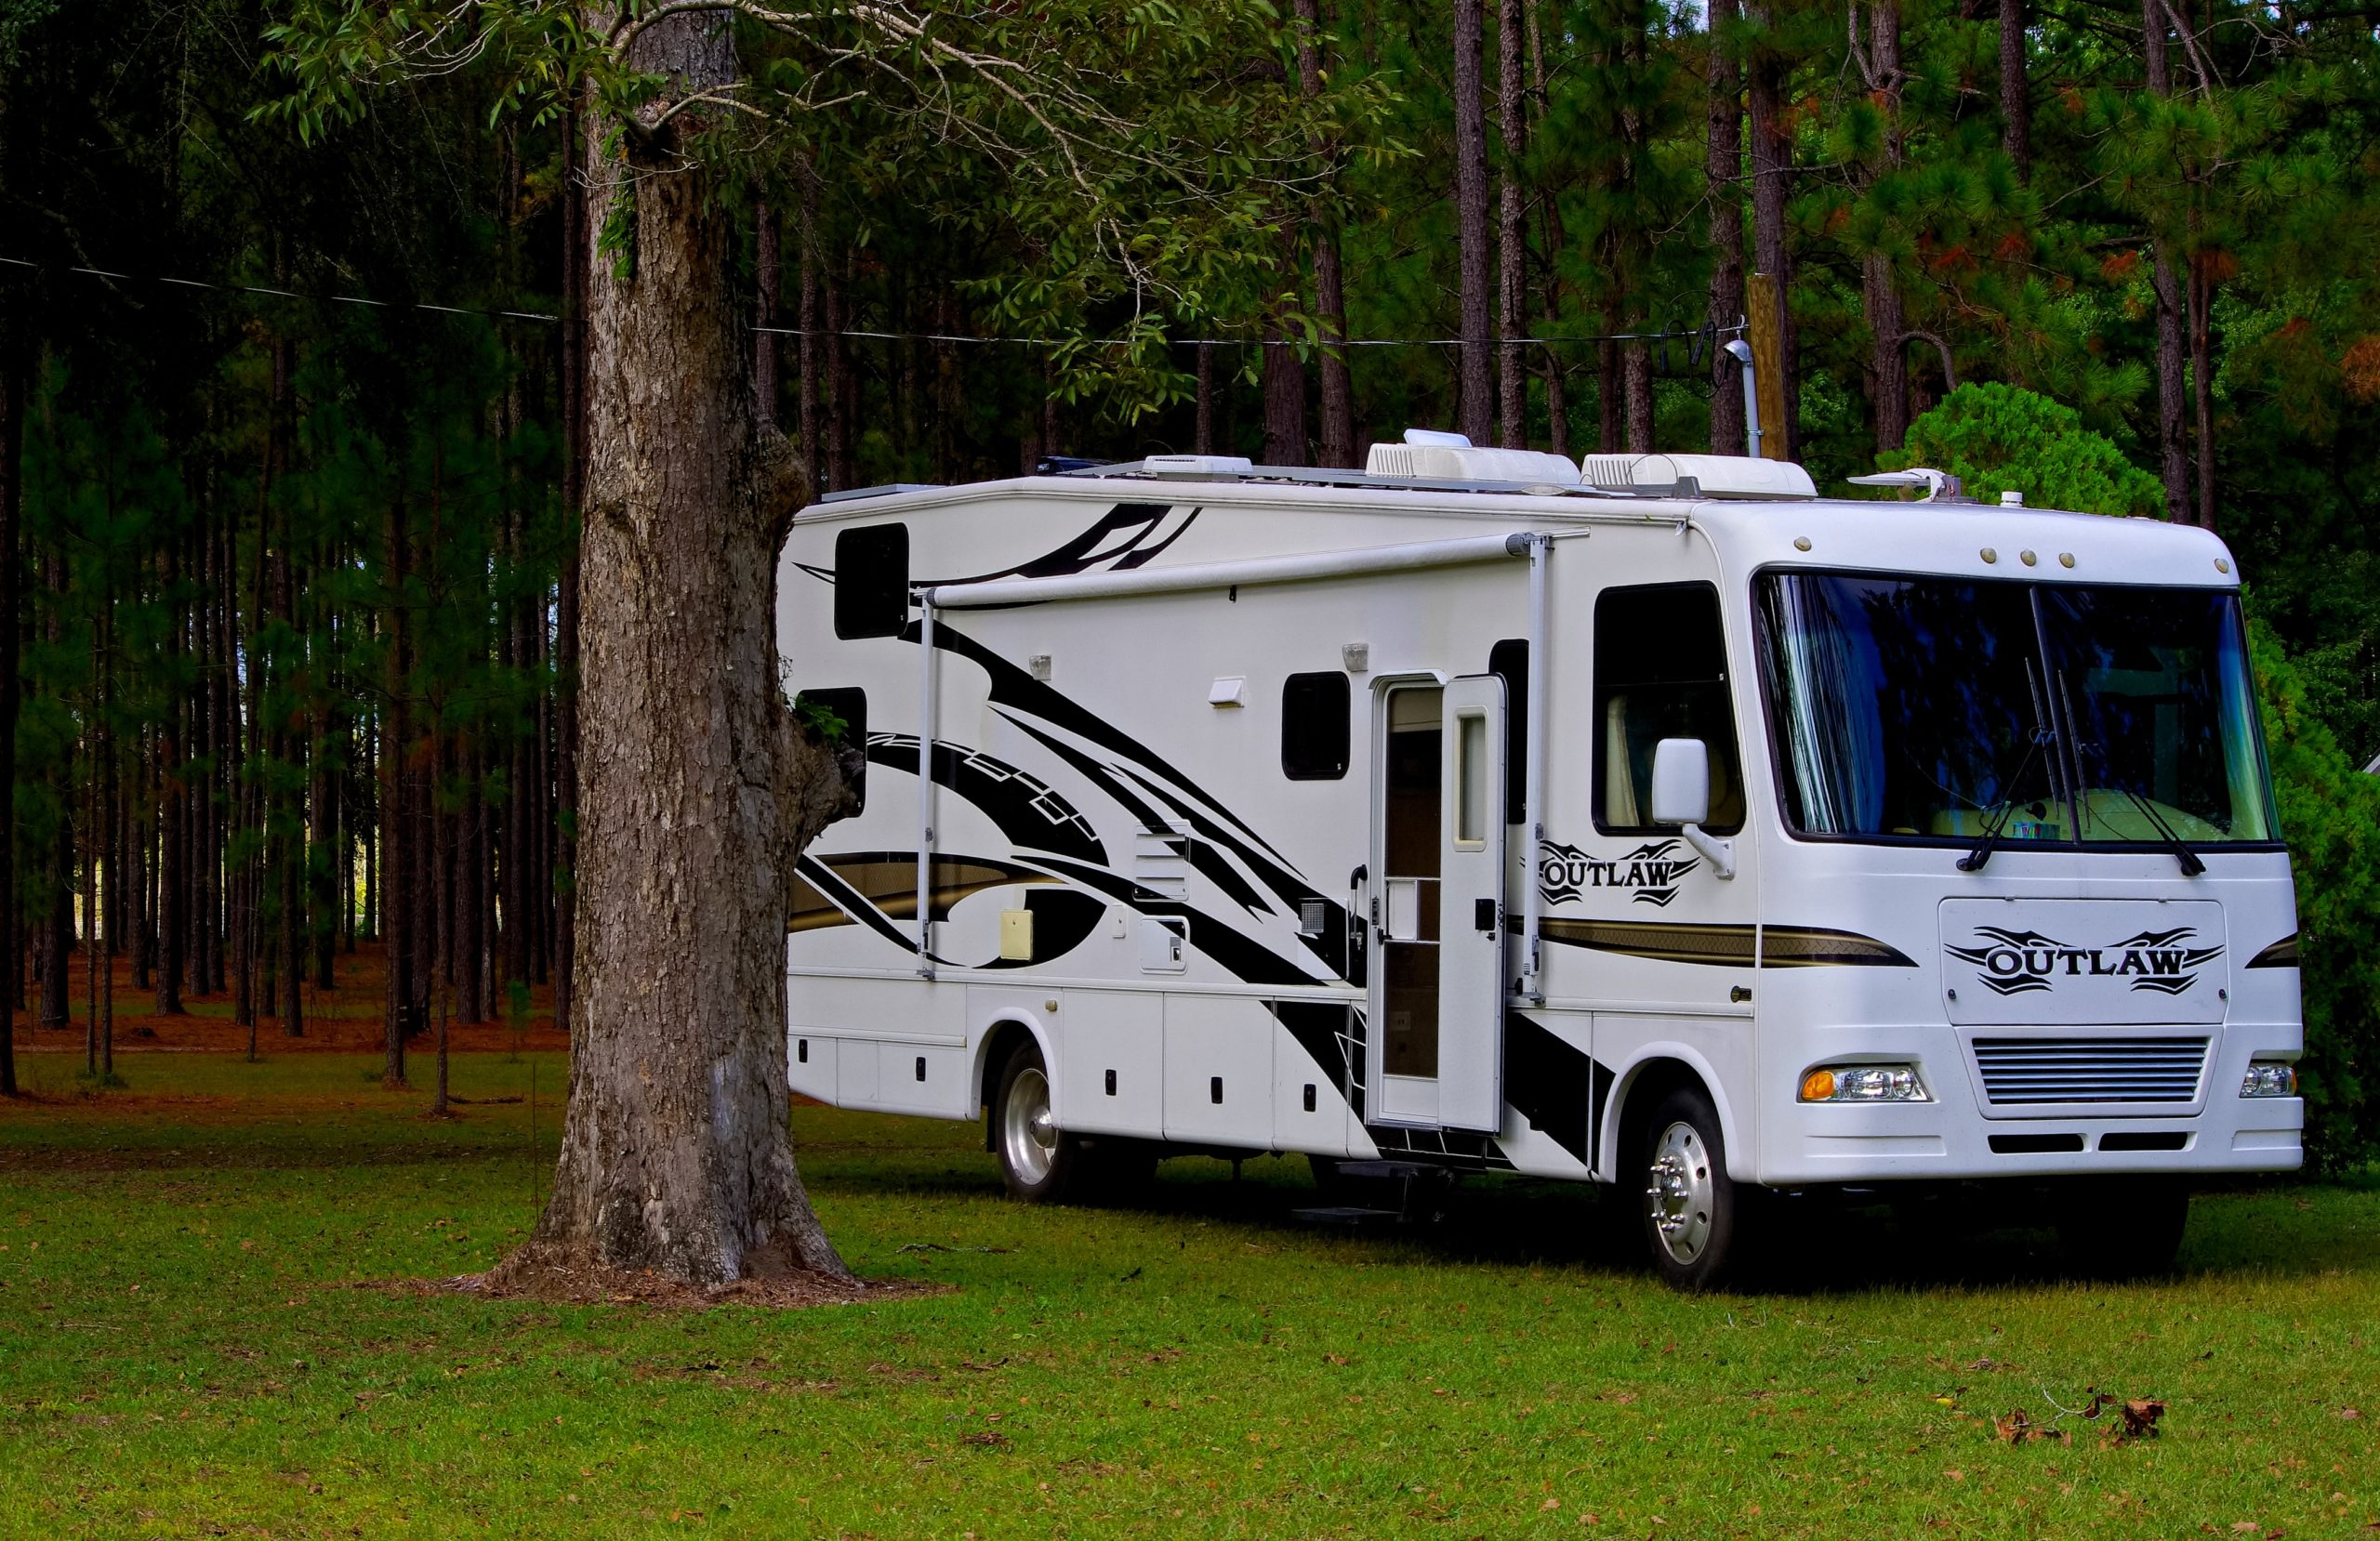 RV parked in the forest